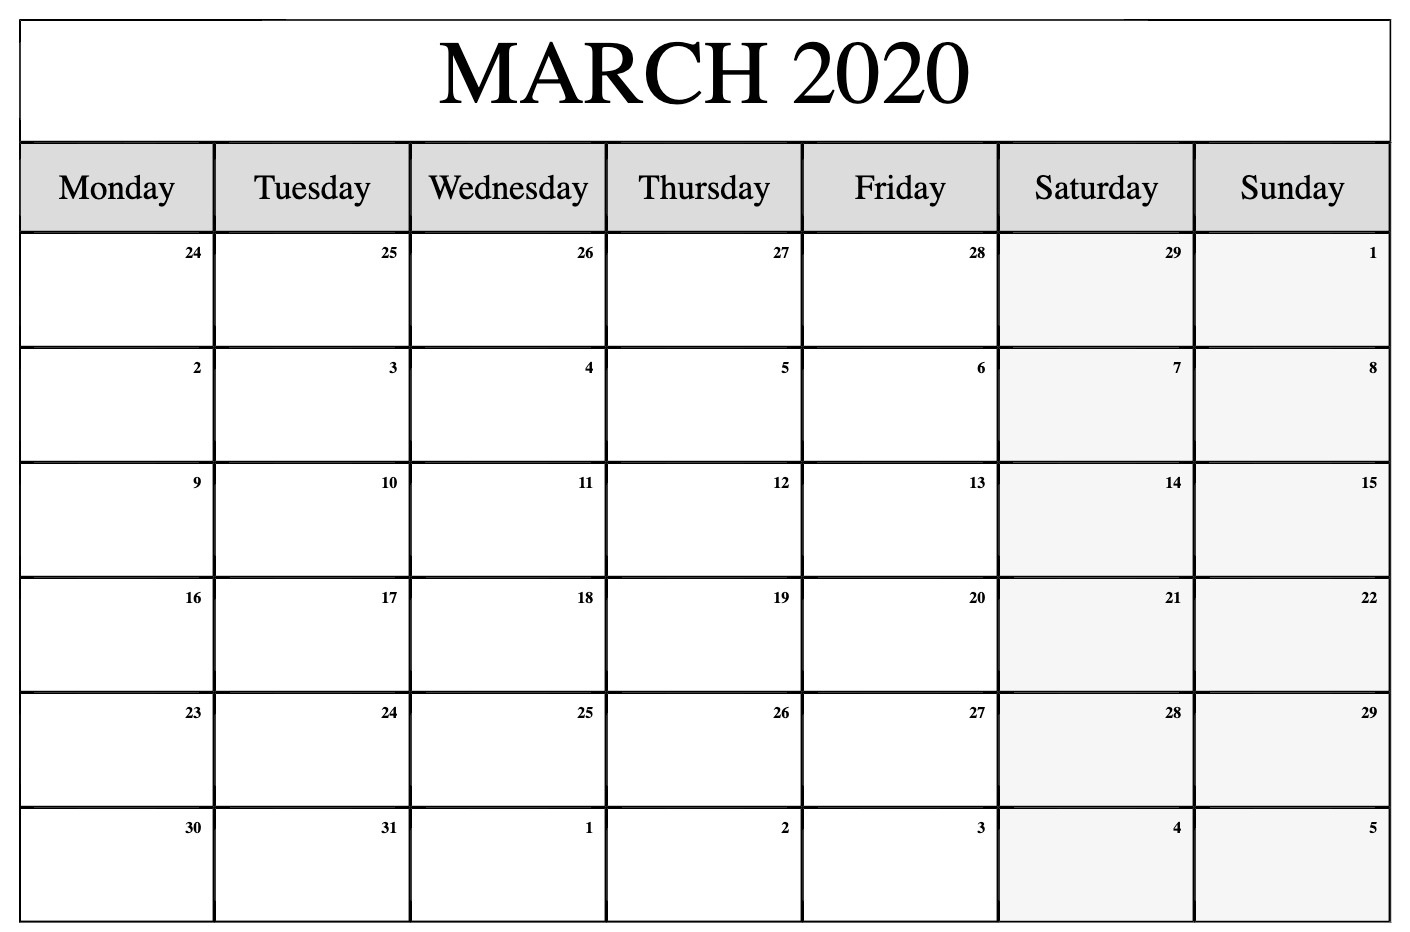 Blank March 2020 Calendar – Record Your Personal Activities